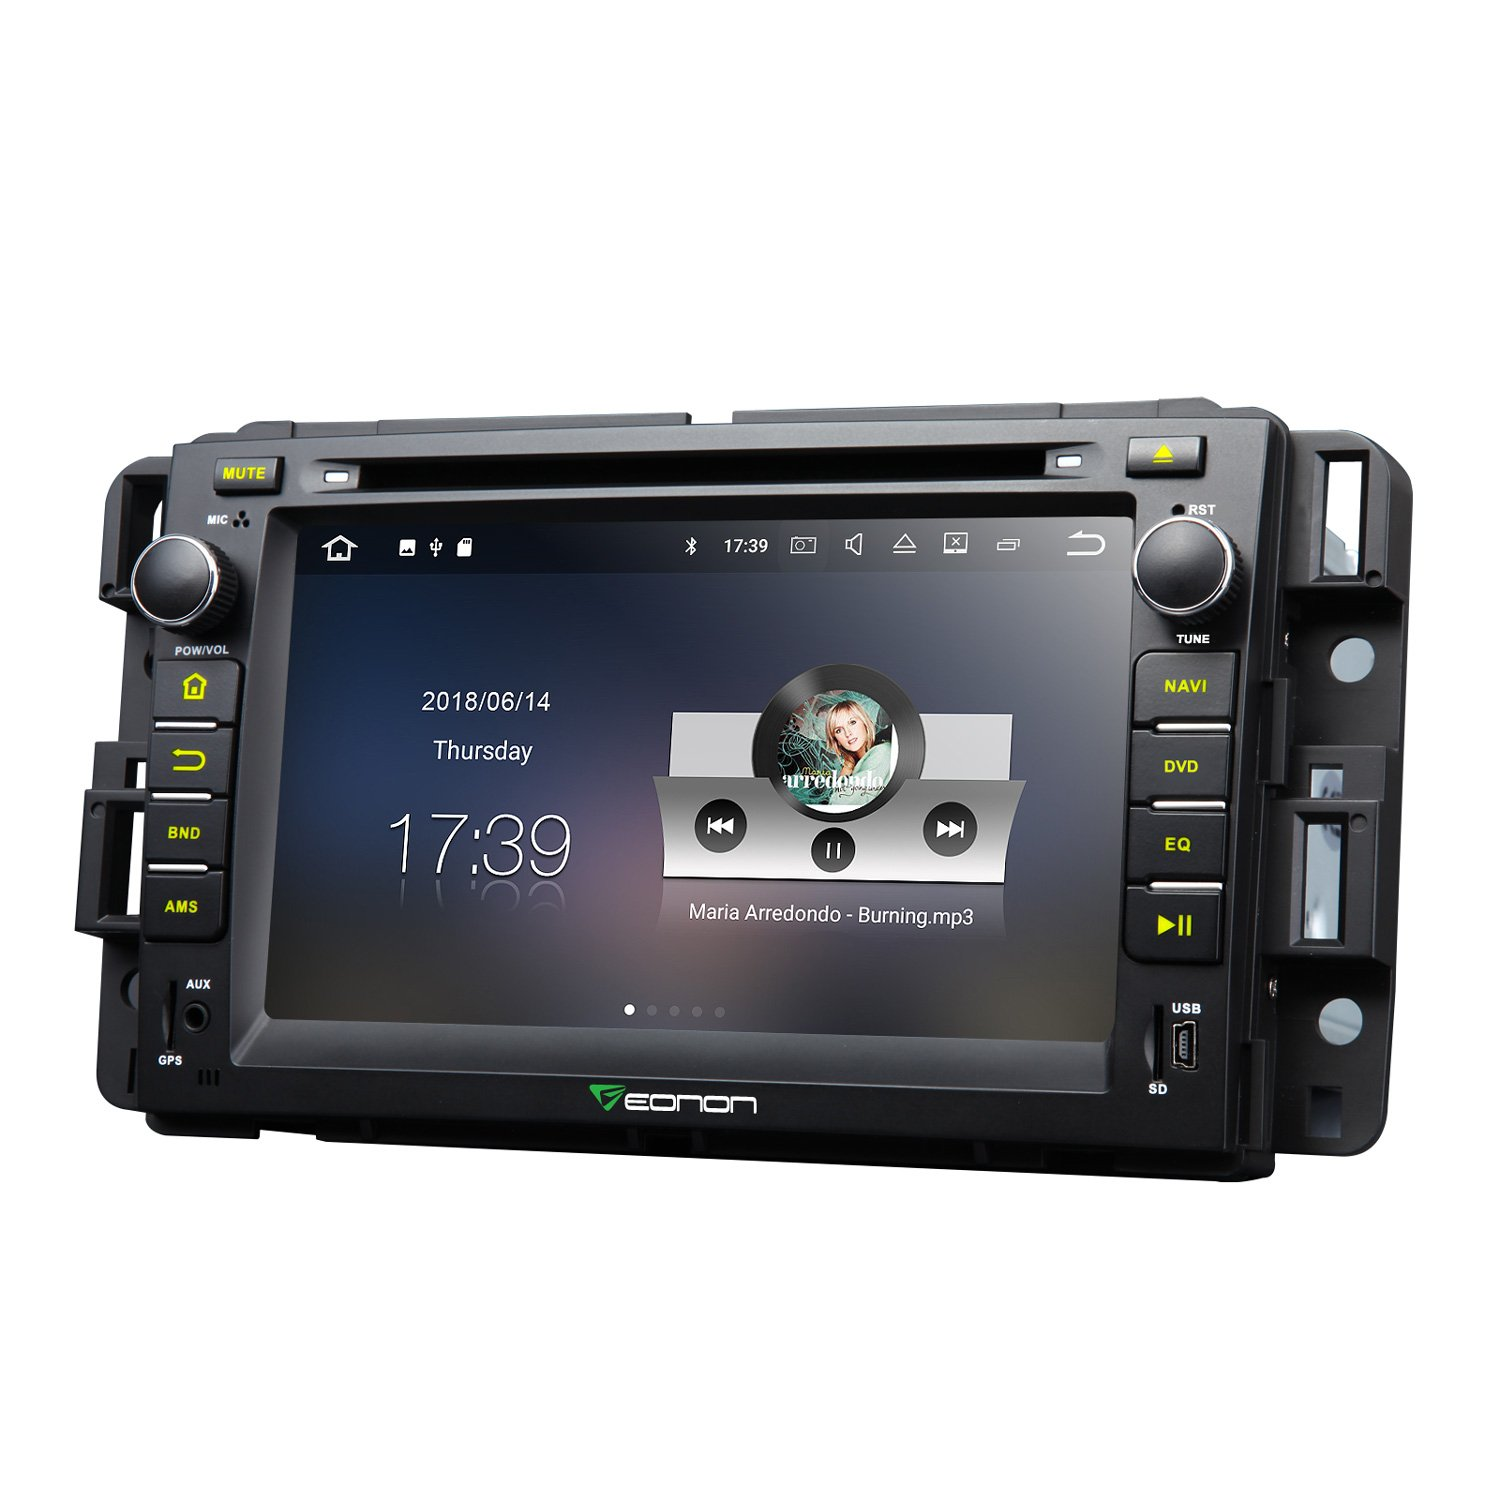 Amazon.com: Eonon Car Stereo Radio 7 Inch Android 7.1 In Dash Touch Screen GPS  Navigation for Chevrolet GMC Silverado Express Avalanche Acadia Impal 2GB  RAM ...